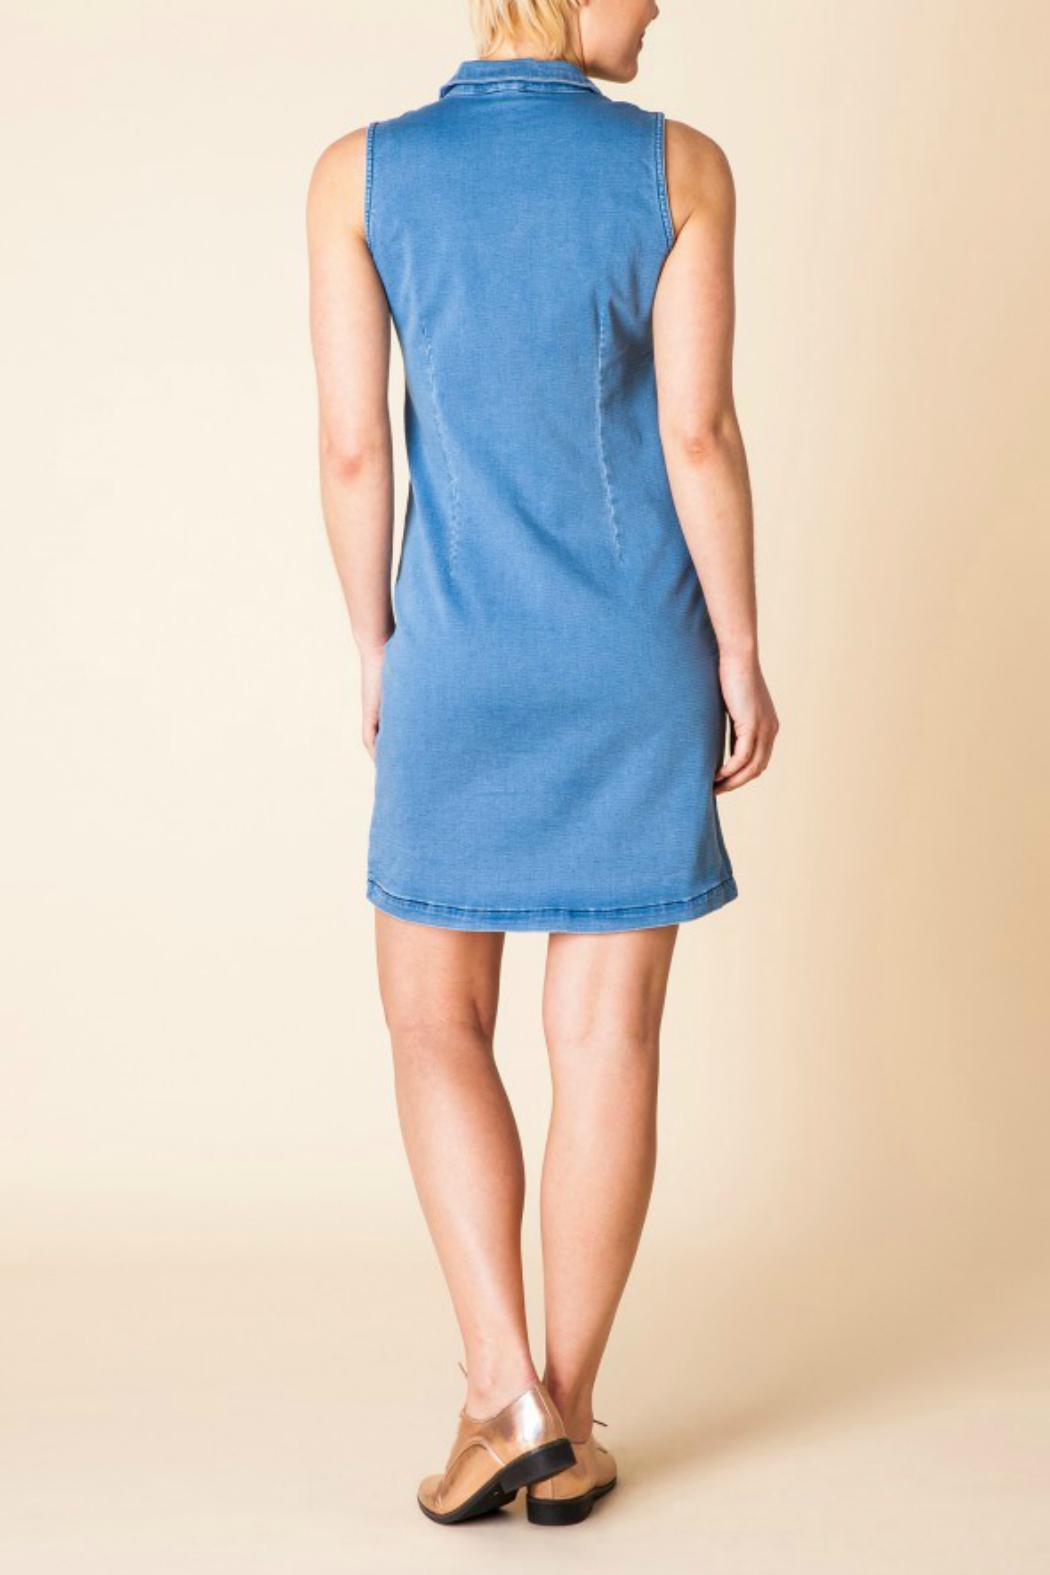 Yest Sleeveless Denim Dress - Side Cropped Image